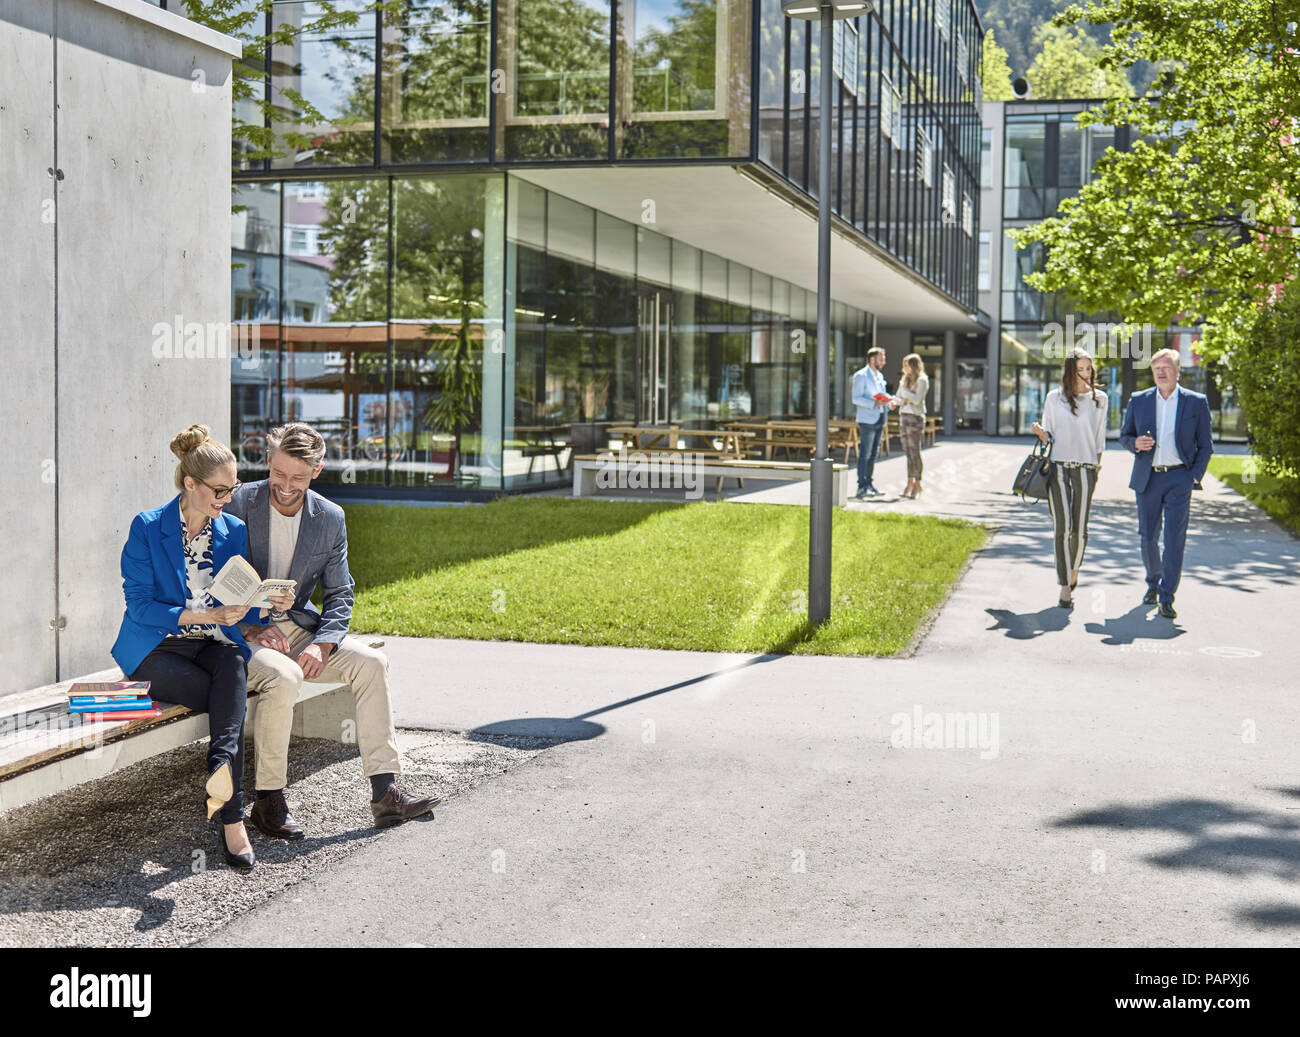 Smiling colleagues with book sitting on bench outside office building - Stock Image